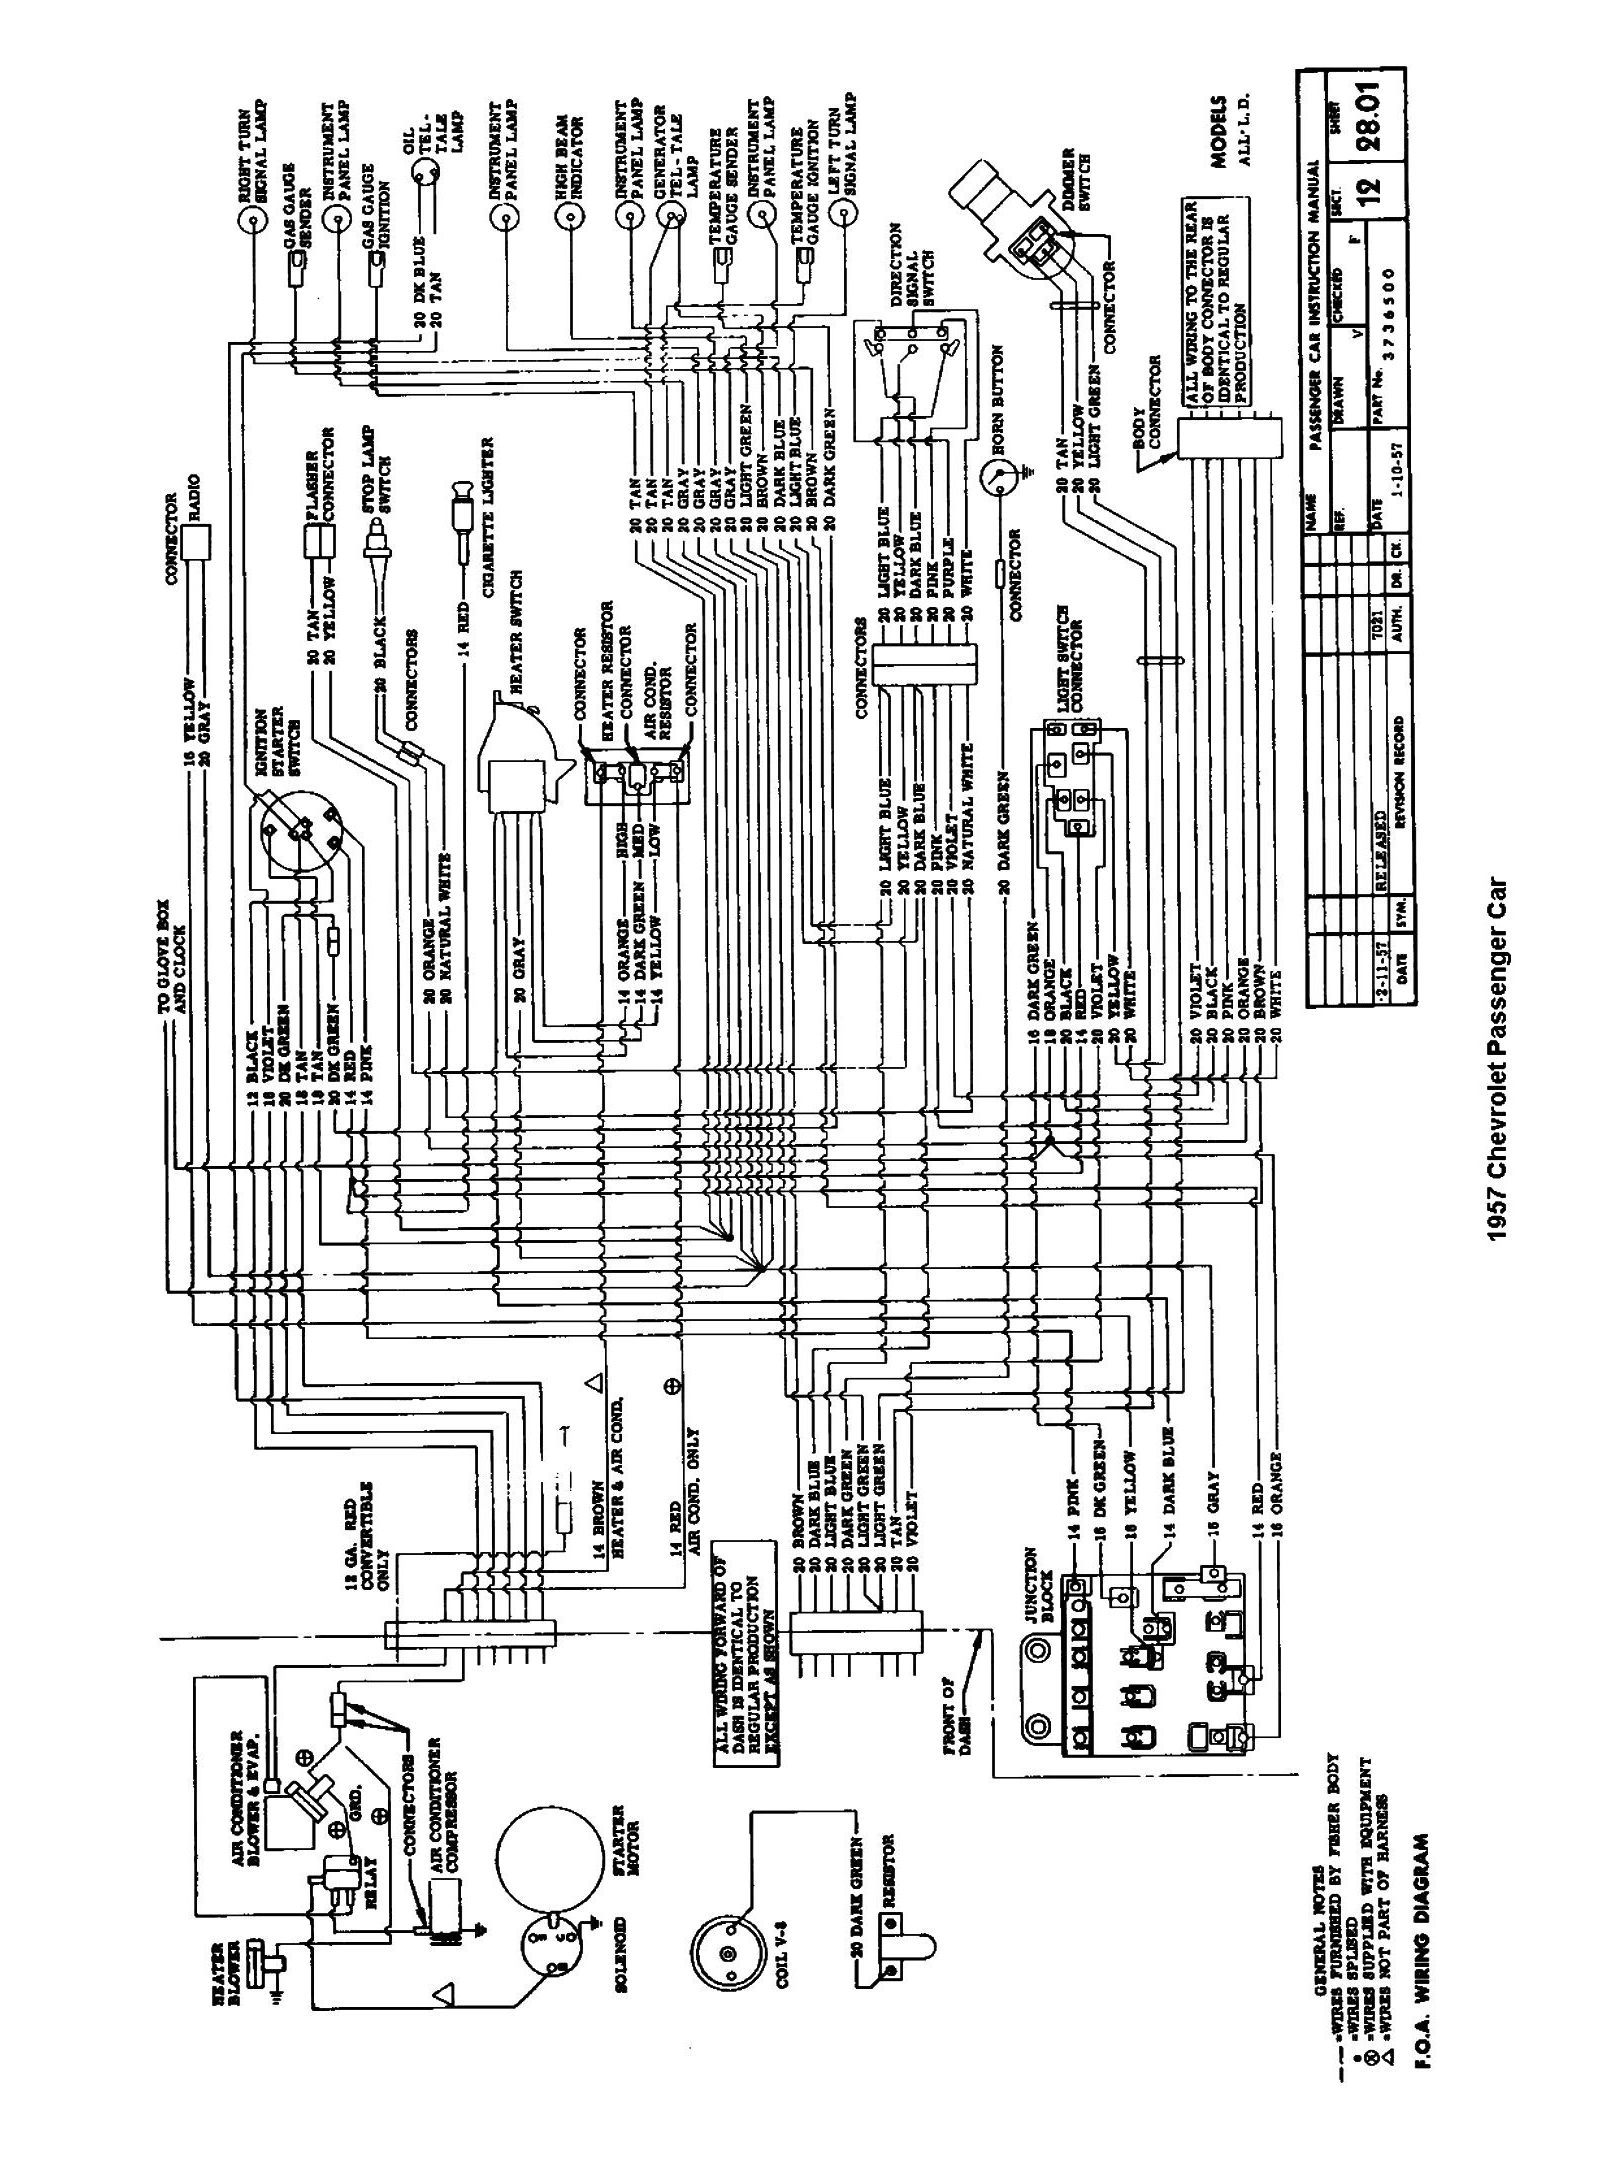 57car2 chevy wiring diagrams 1956 Chevy Convertible at crackthecode.co